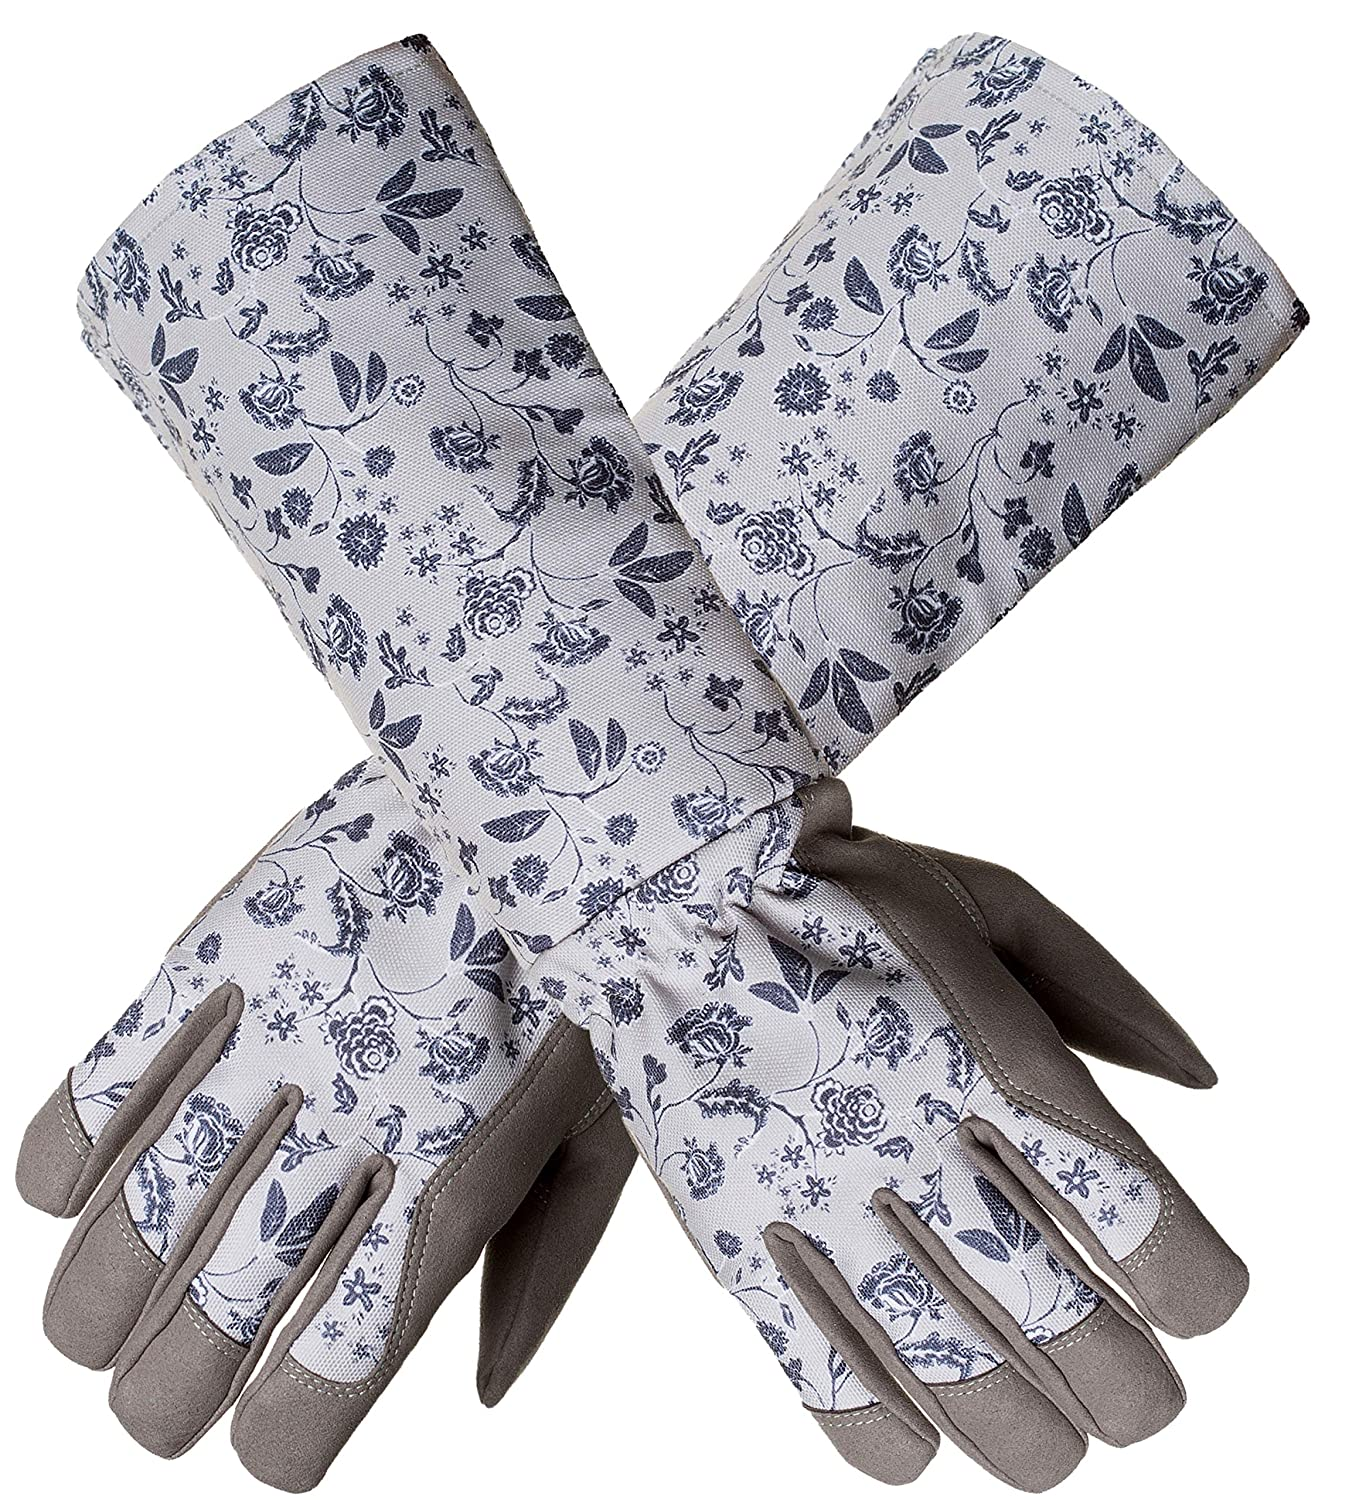 Women Garden Work Gloves, KAYGO KG128SG, For Every Beautiful Women and Her Lovely Garden (Long Forearm)